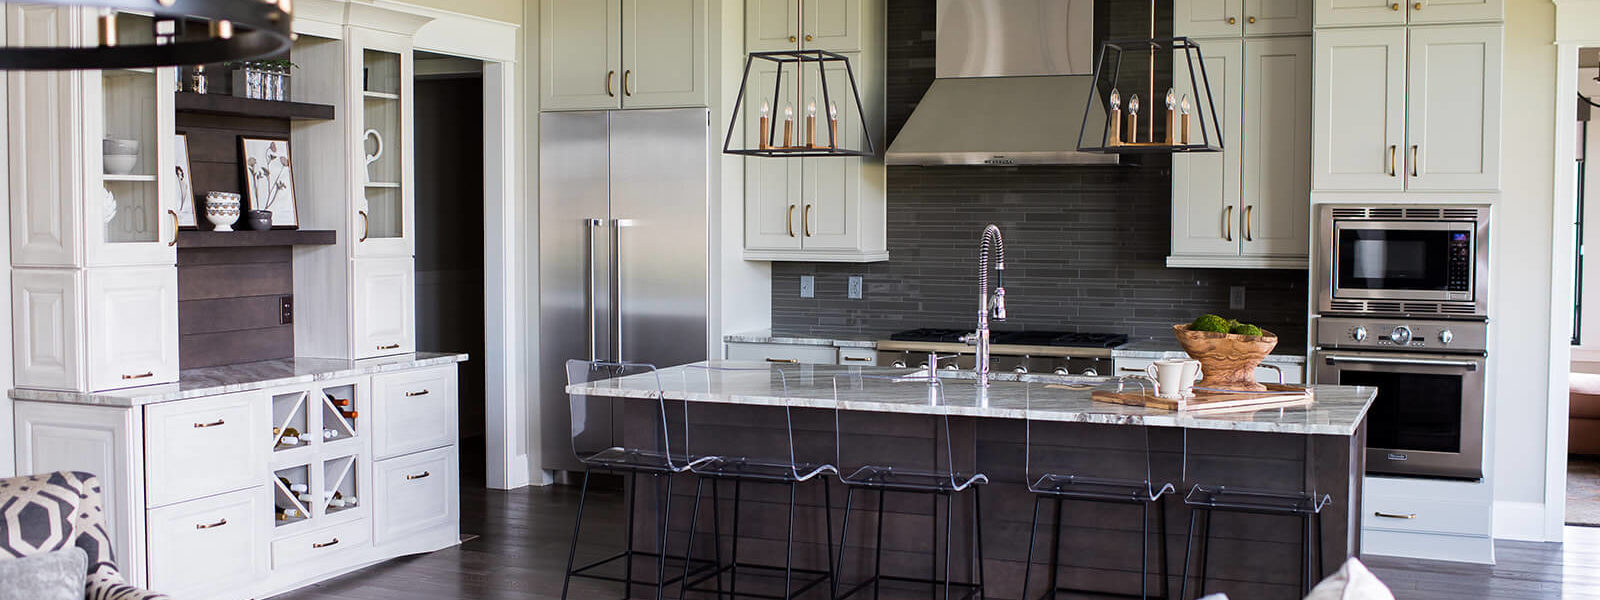 kitchen design considerations